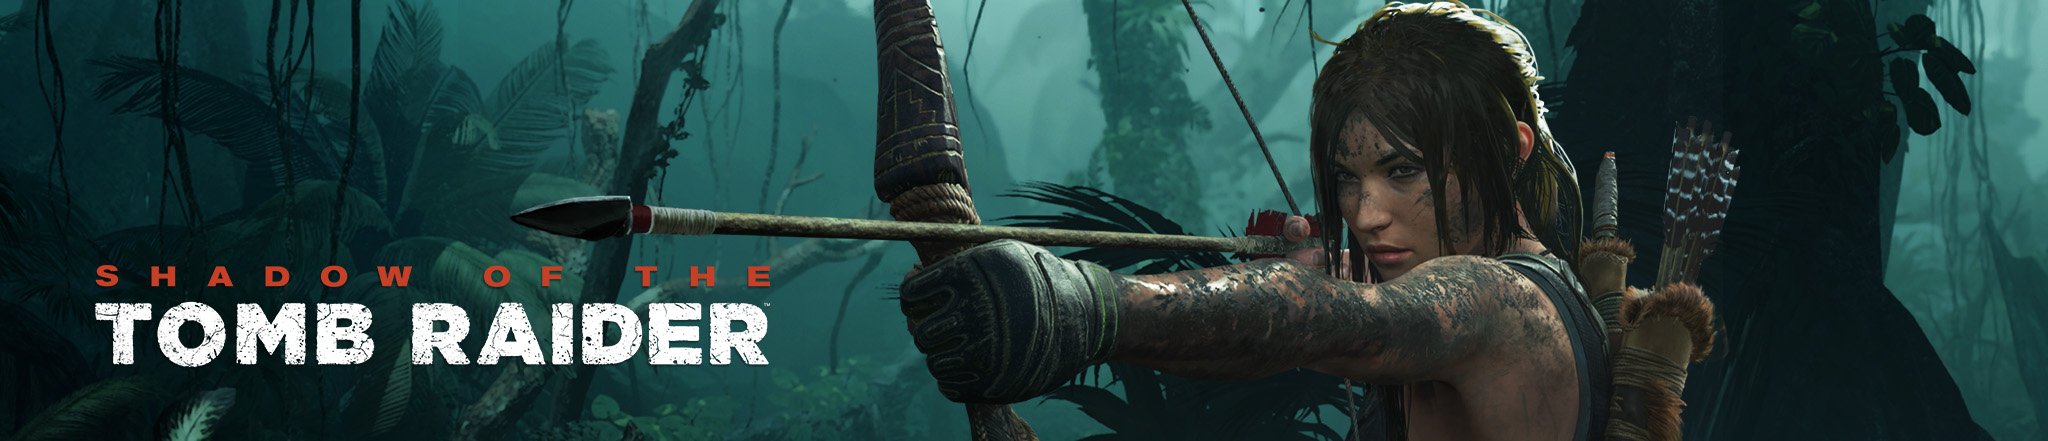 Shadow of The Tomb Raider: Lara pointing bow and arrow in jungle